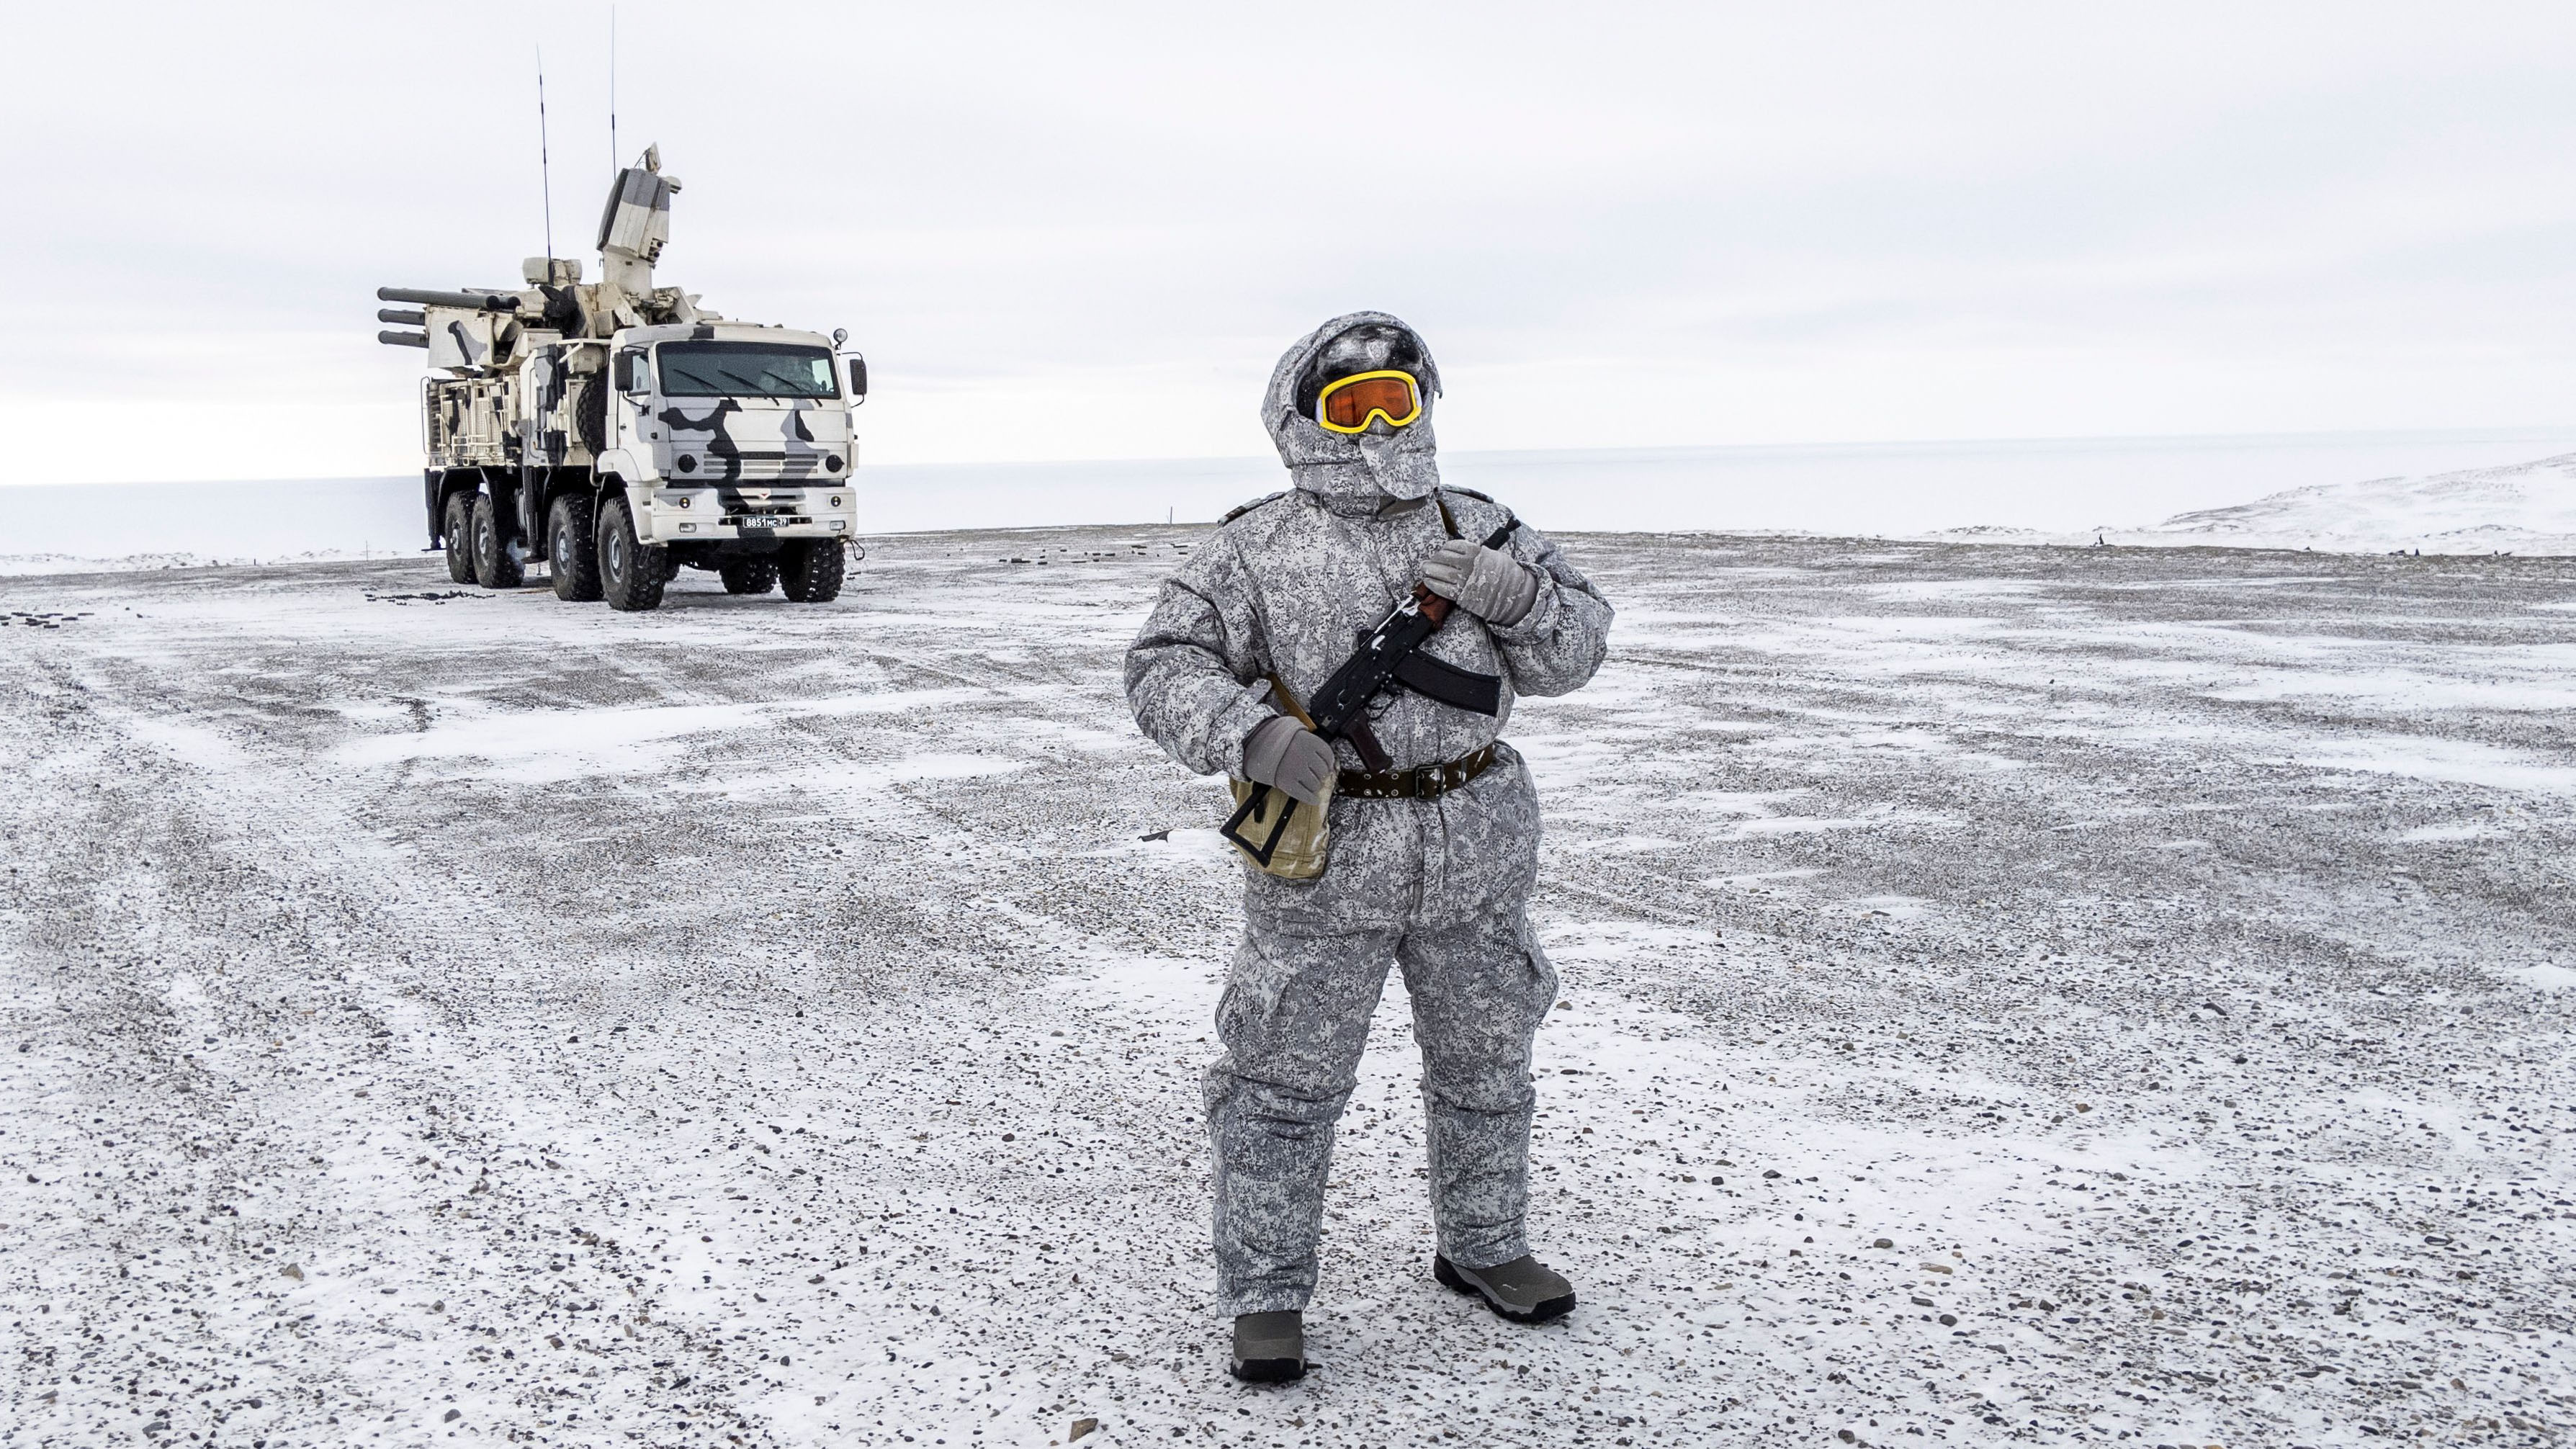 A soldier holds a machine gun as he patrols the Russian northern military base on Kotelny island, beyond the Artic circle on April 3, 2019. - The Russian military base dubbed the